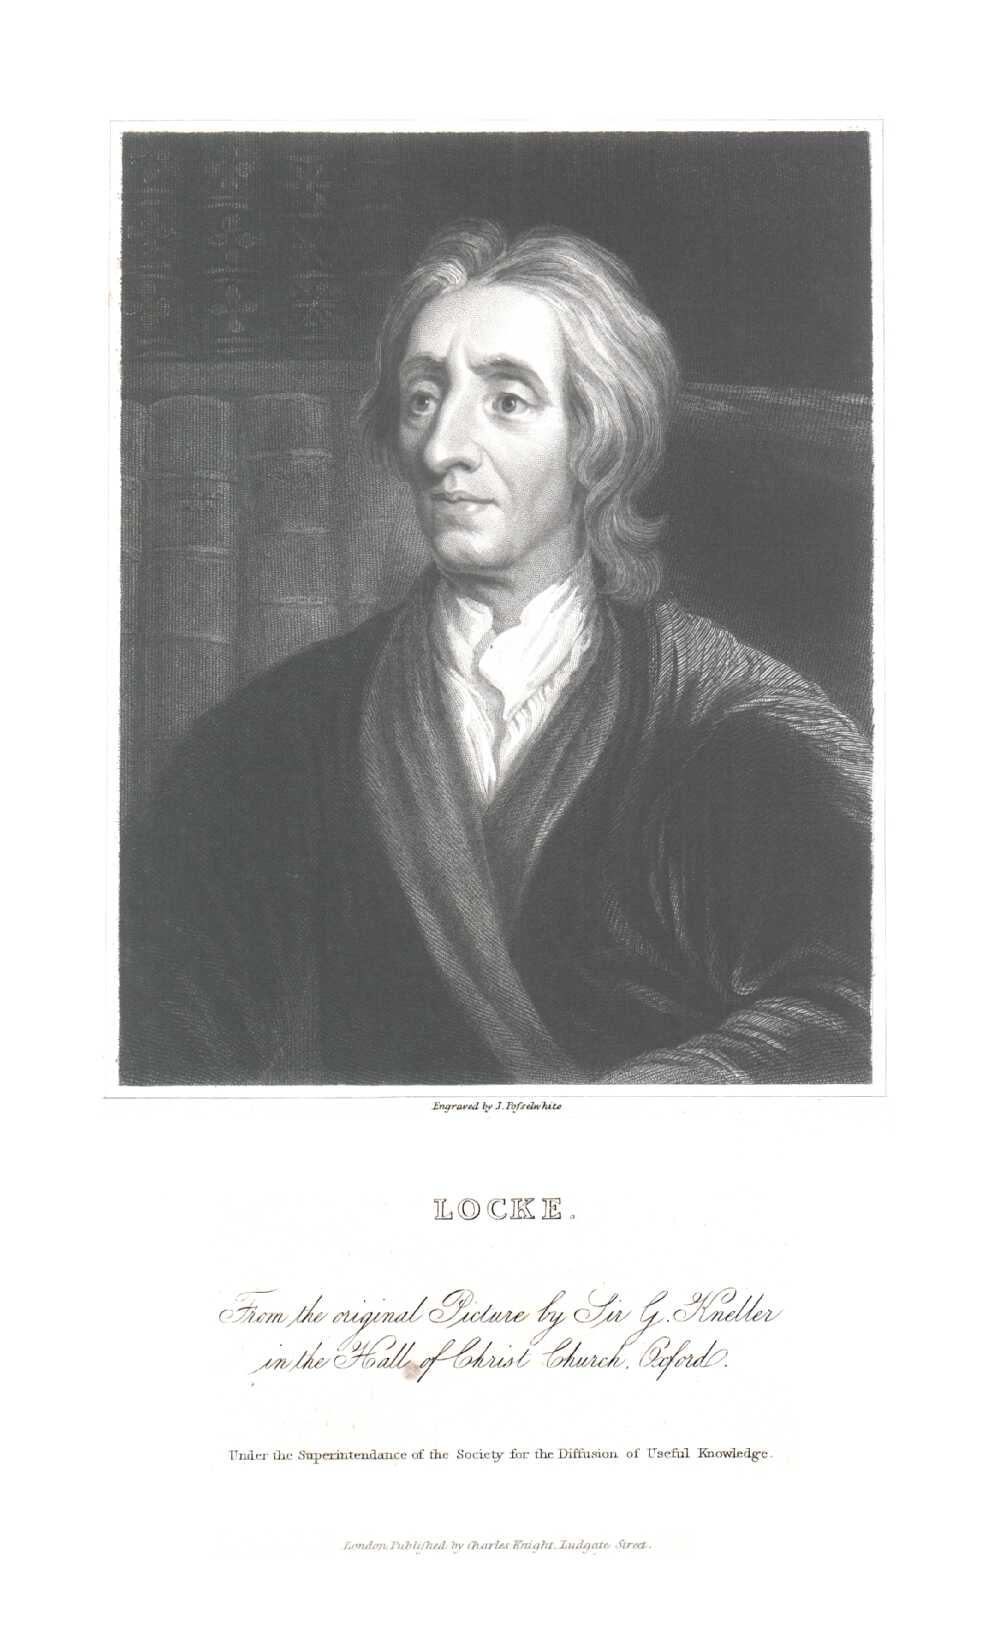 Portrait of John Locke,  Image number:SIL14-L005-04a